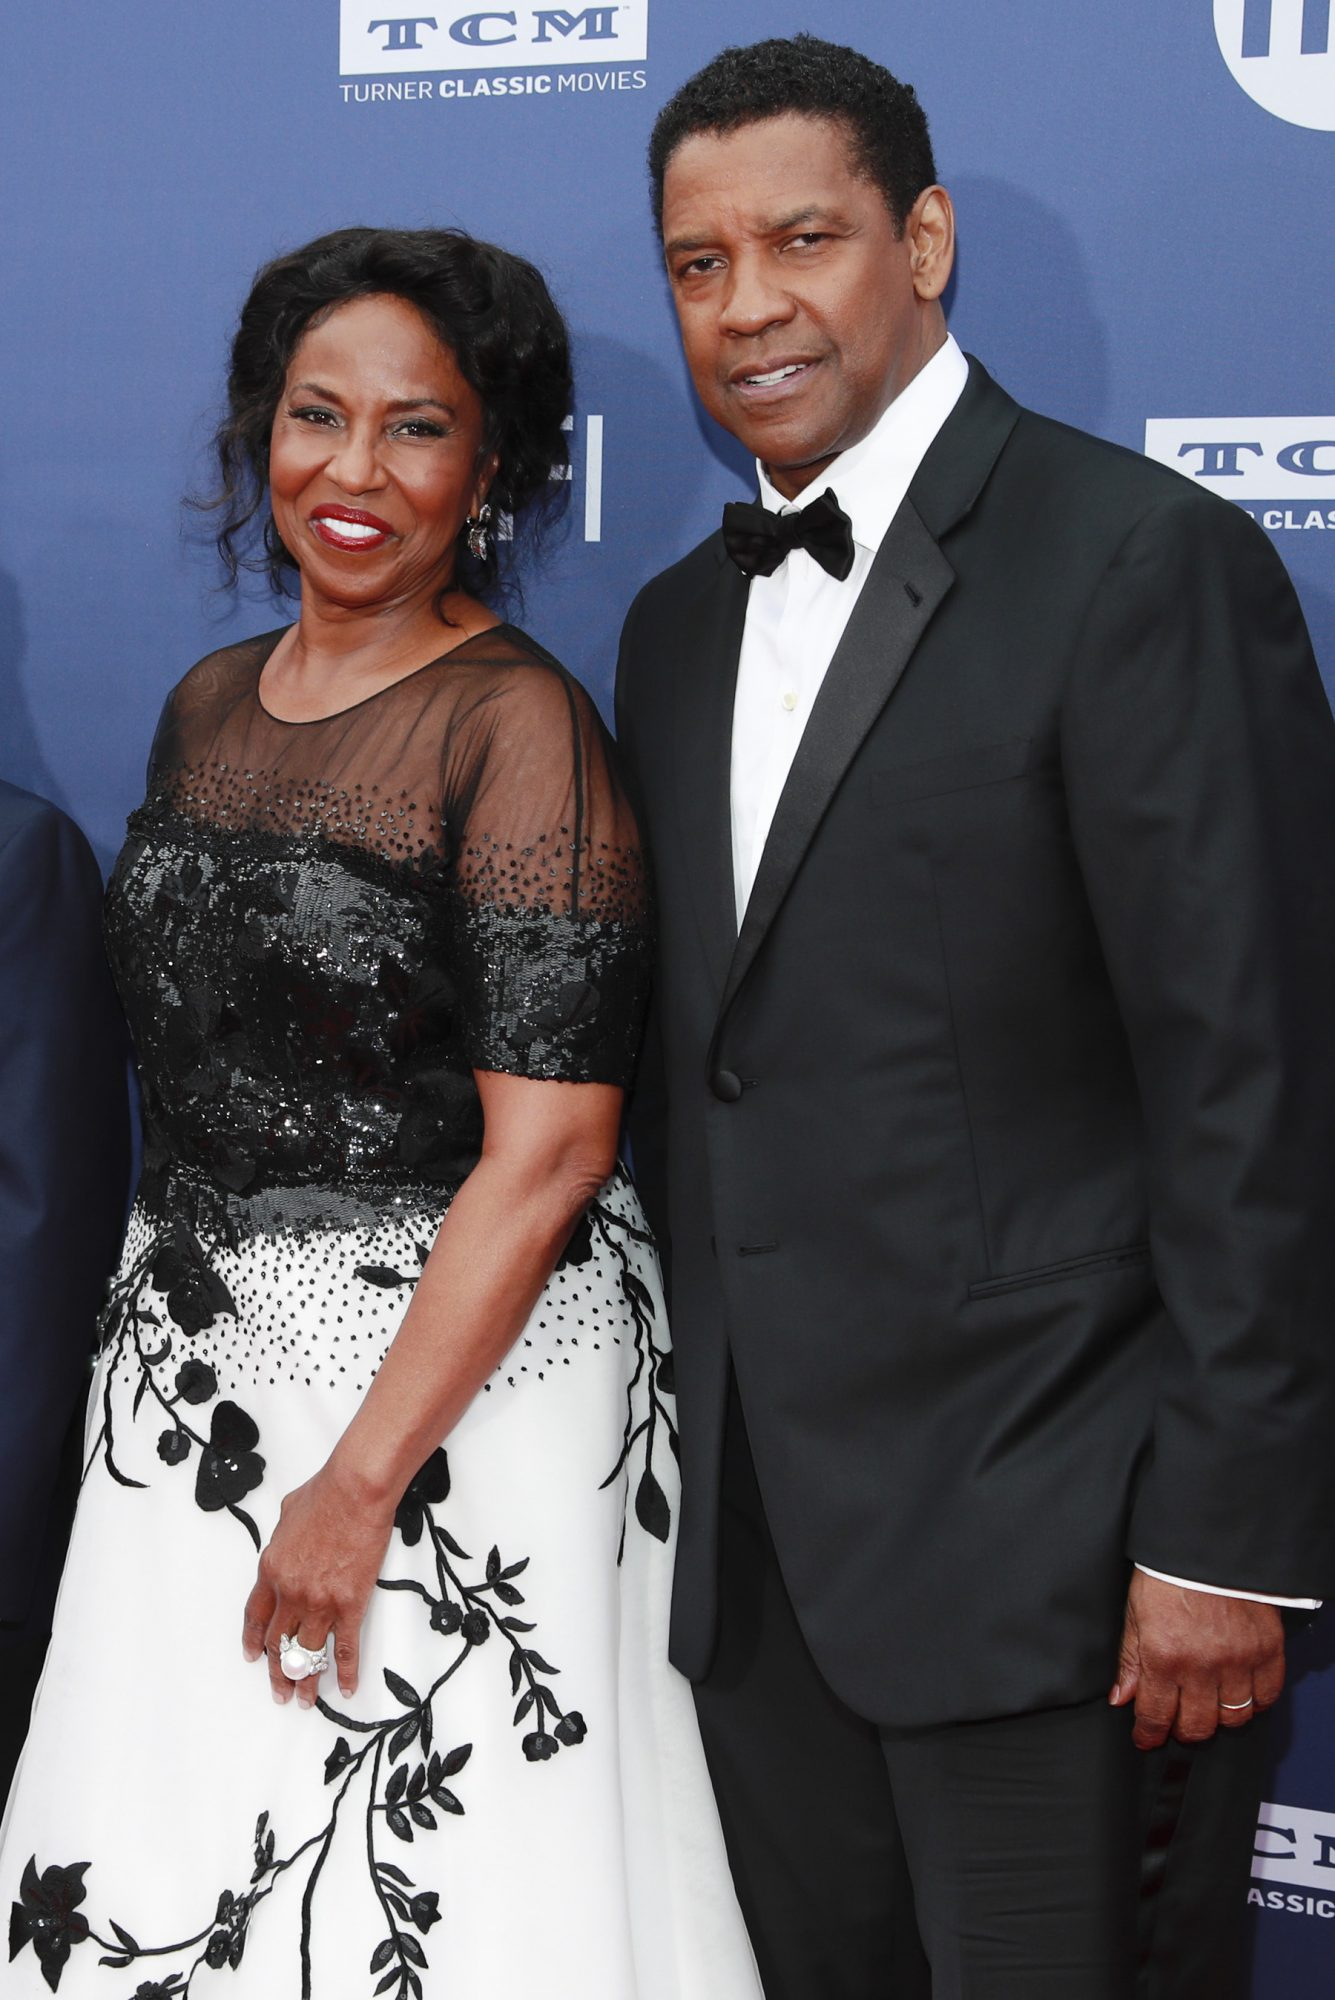 HOLLYWOOD, CALIFORNIA - JUNE 06: Pauletta Washington (L) and Denzel Washington attend the 47th AFI Life Achievement Award honoring Denzel Washington at Dolby Theatre on June 06, 2019 in Hollywood, California. (Photo by Rich Fury/Getty Images)